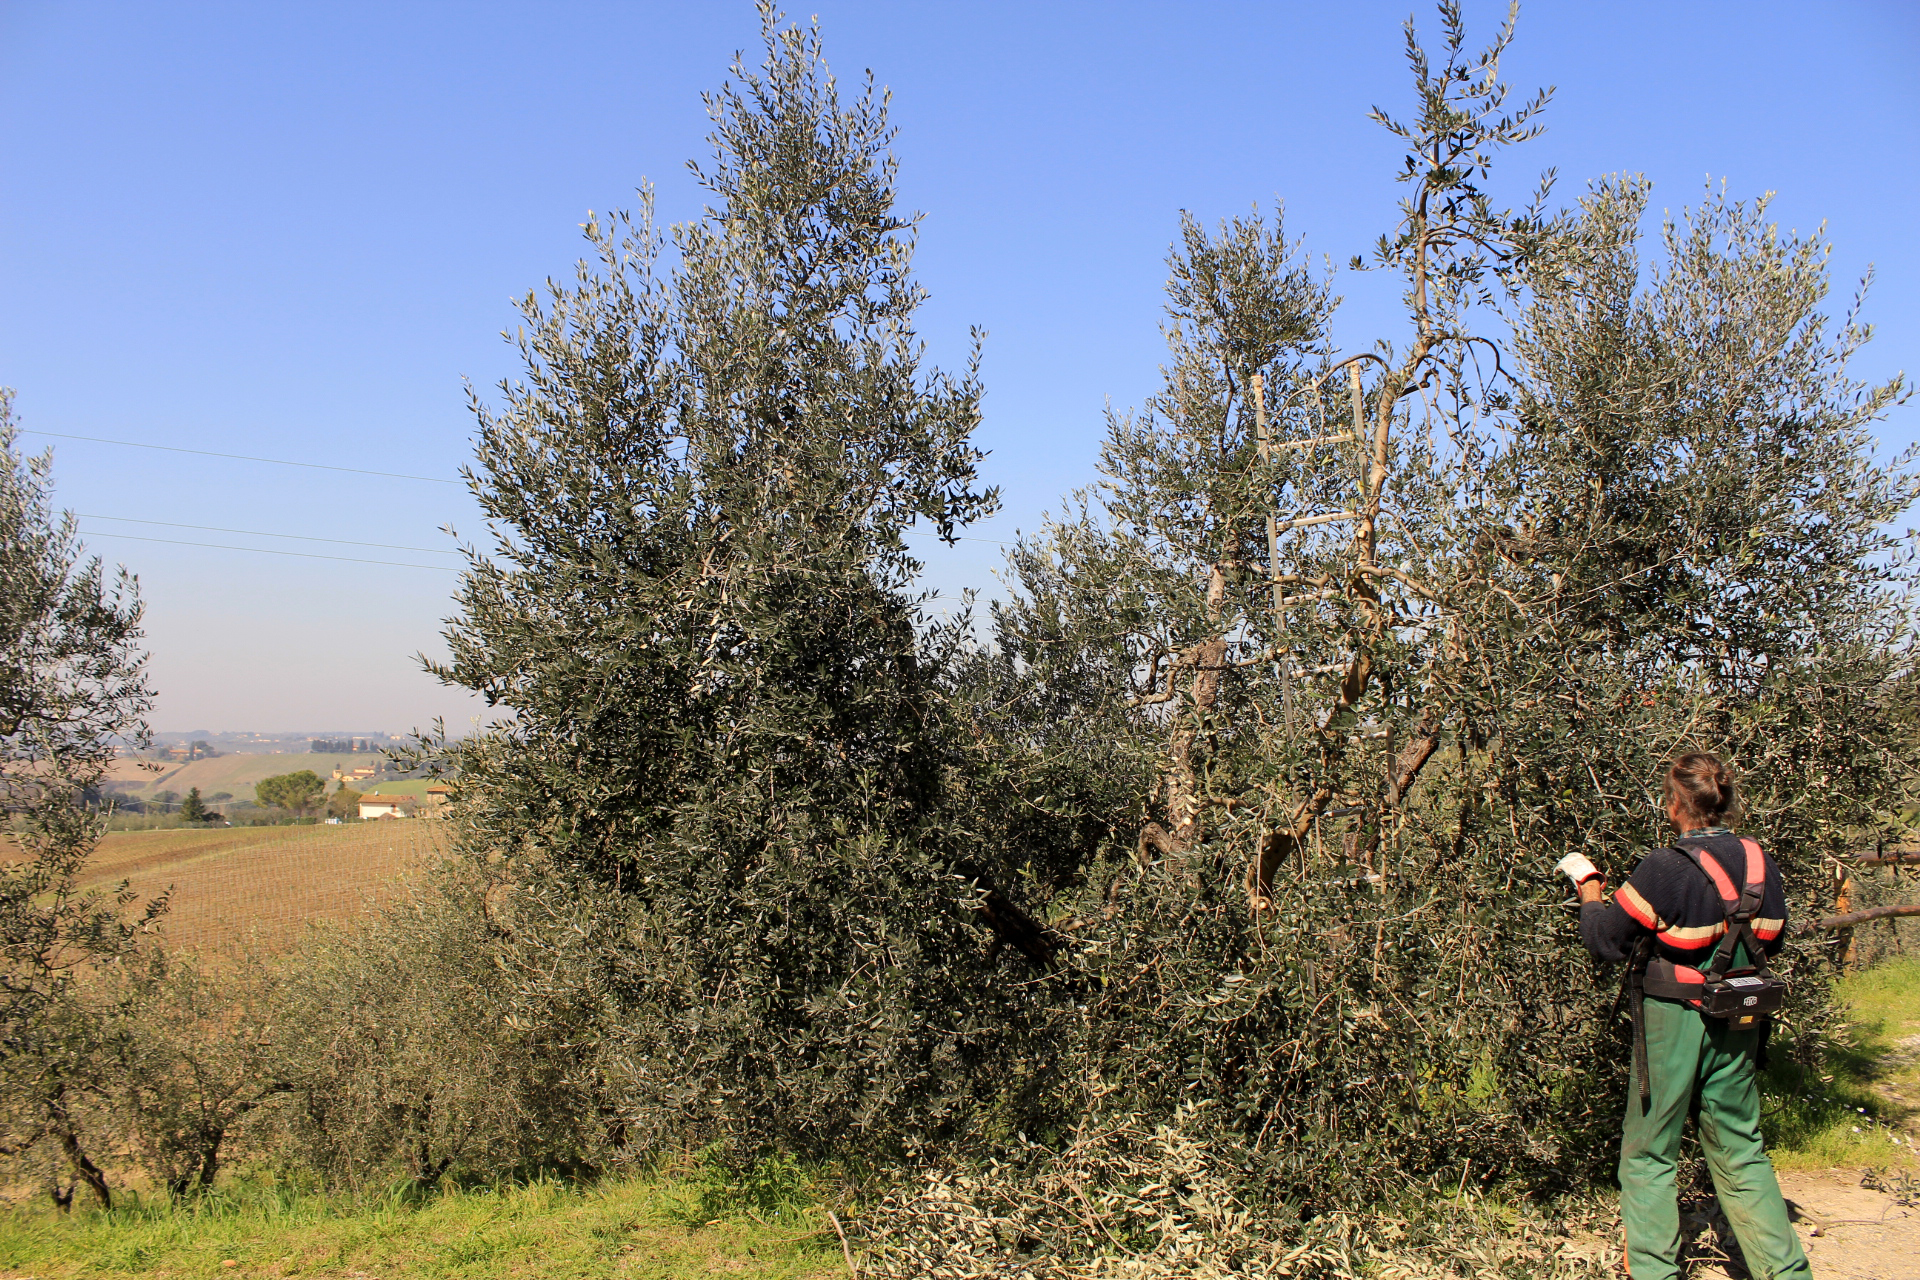 Pruning olive trees at San Michele a Torri farm (Scandicci)